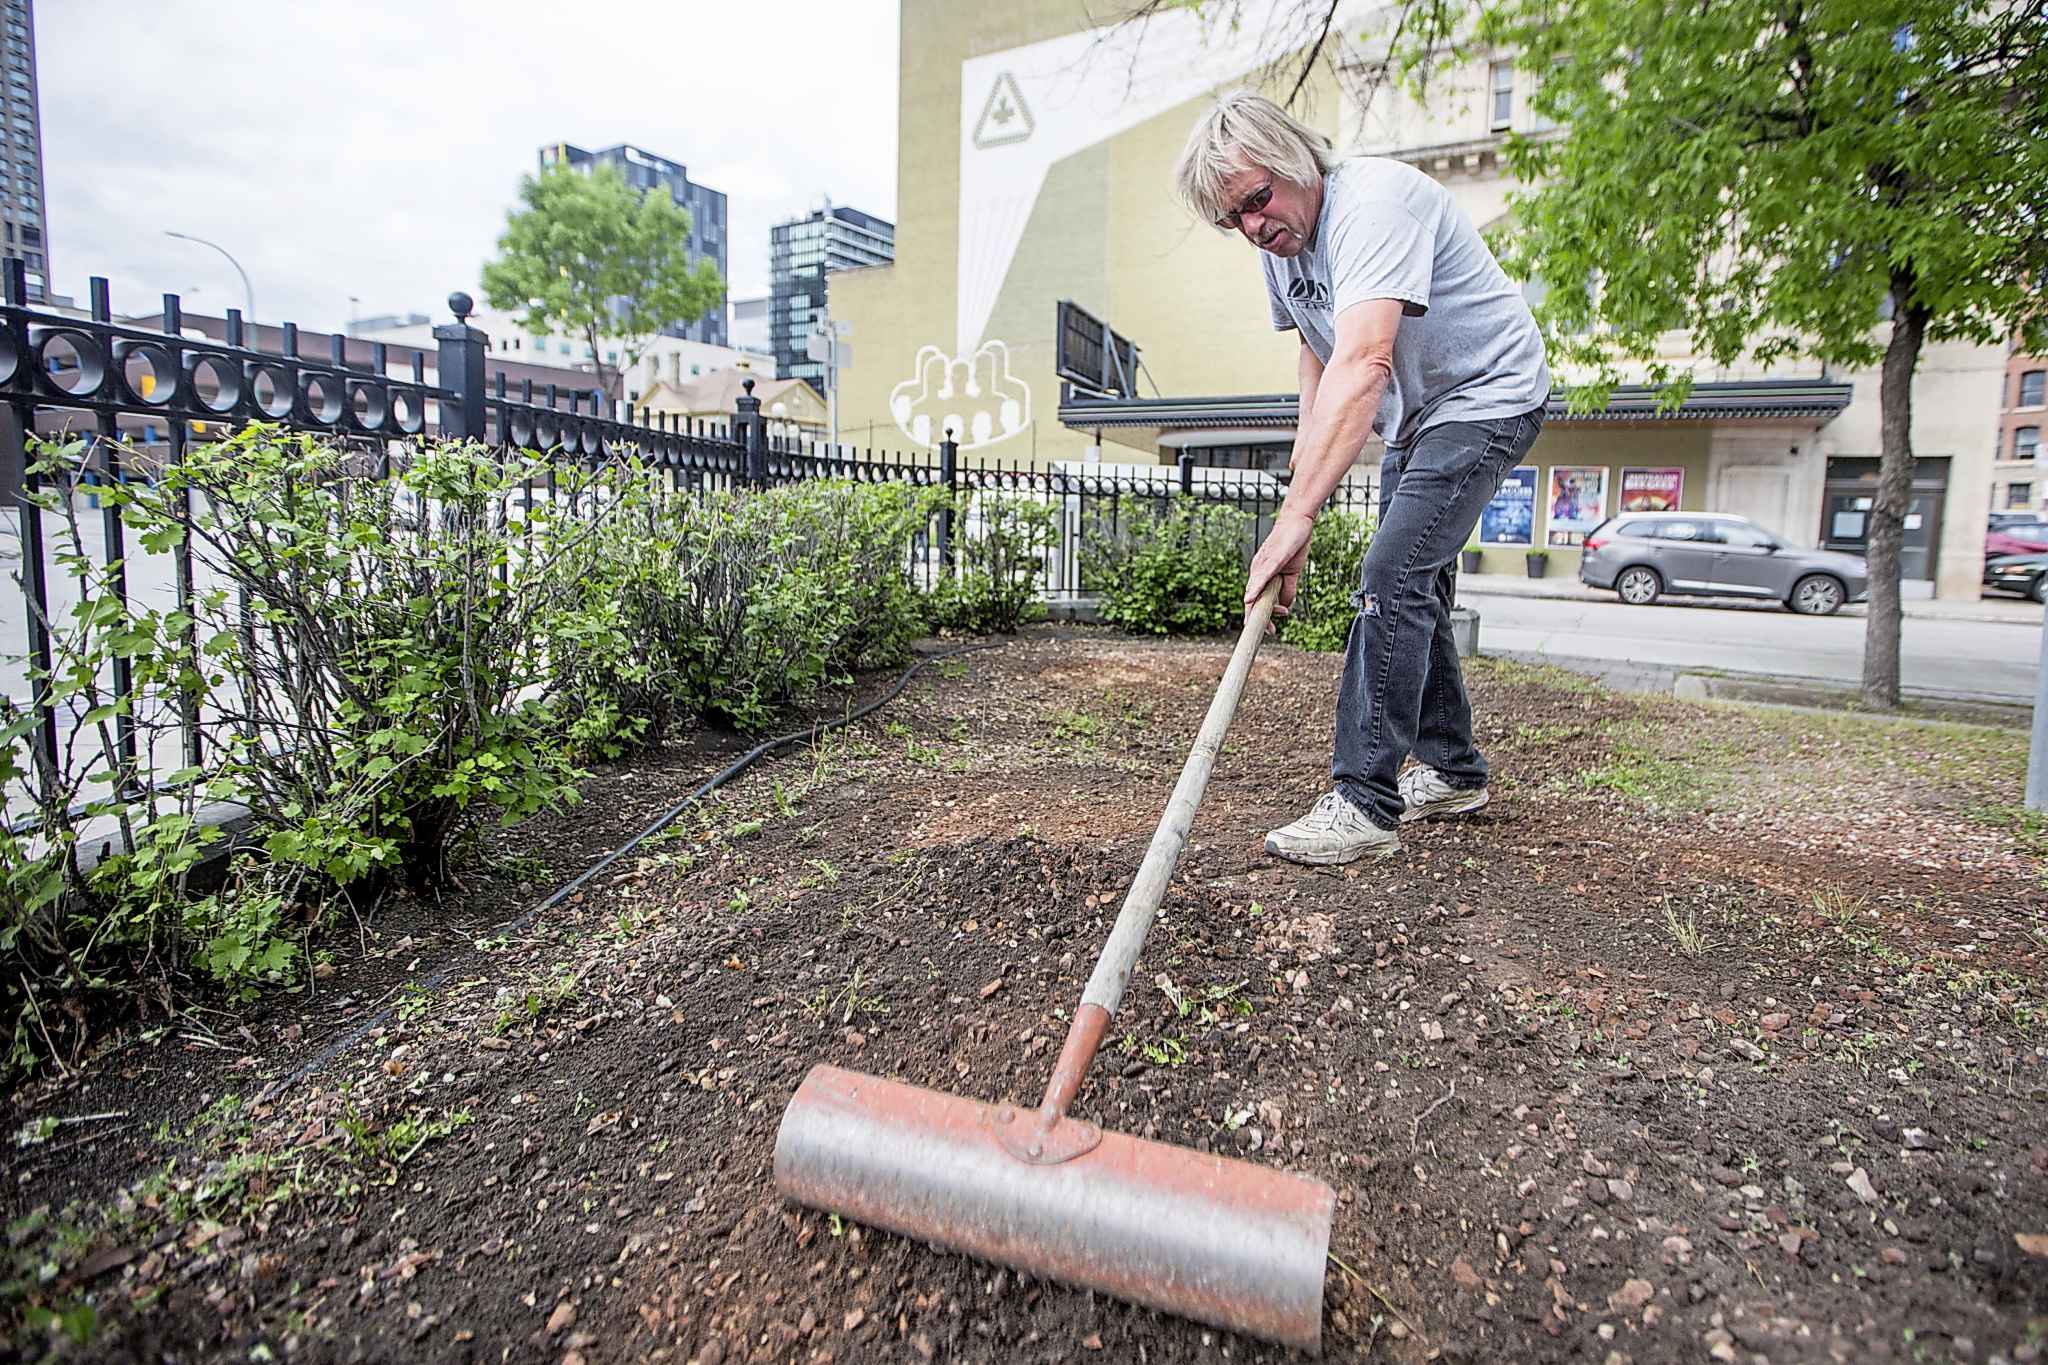 Edward Bell, owner/contractor of Bell's Property Services, cleans up the future patio space.